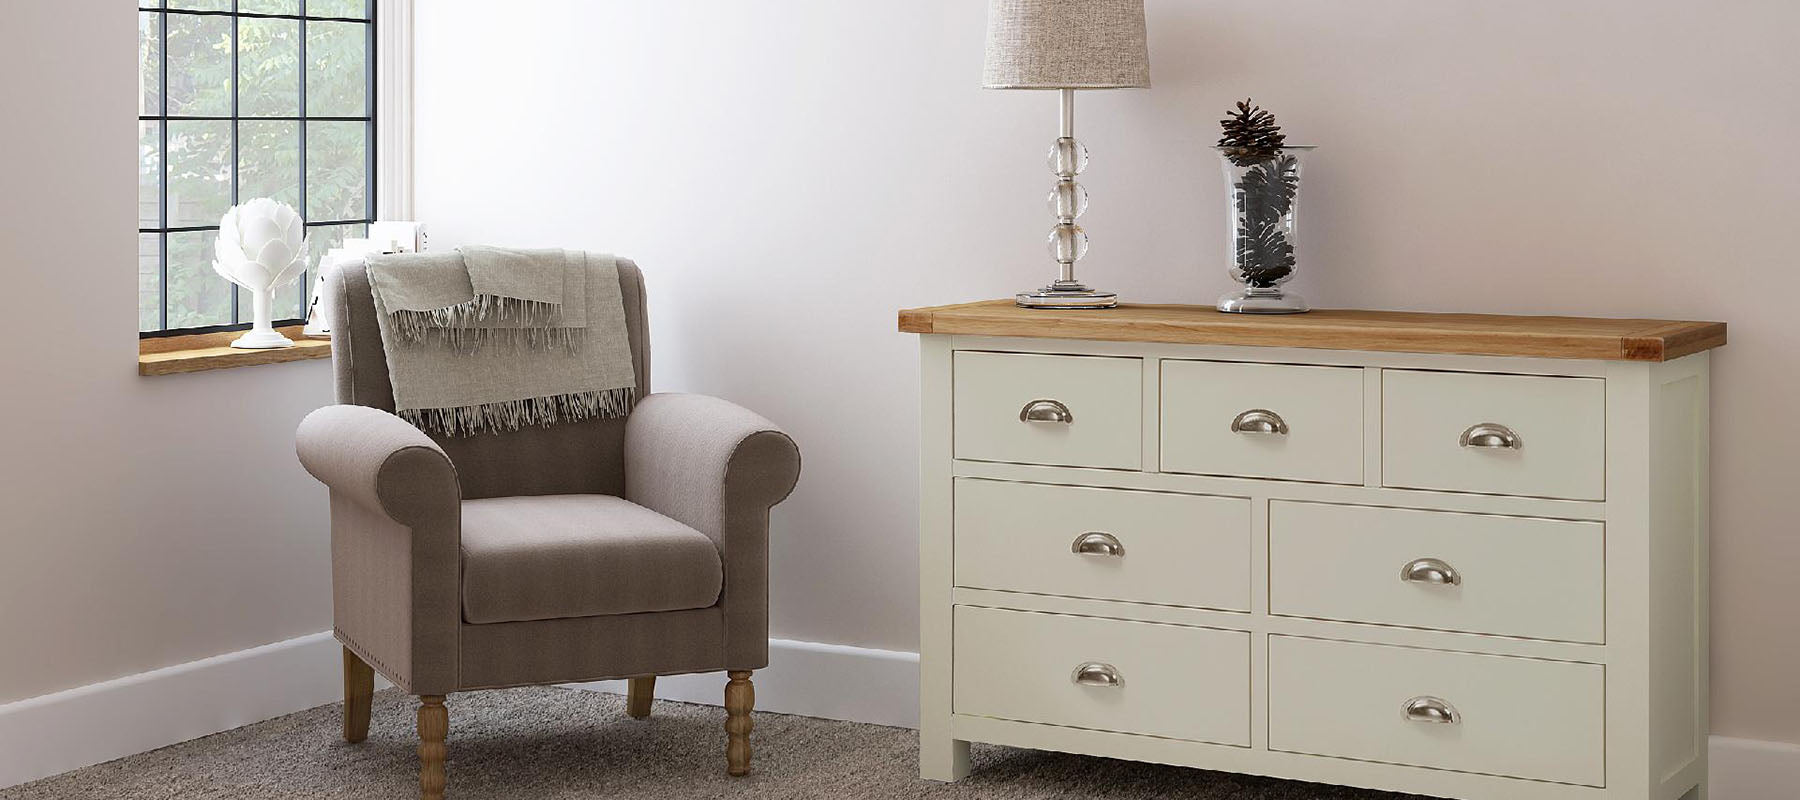 Daymer Cream sideboard with chair | Roseland Furniture